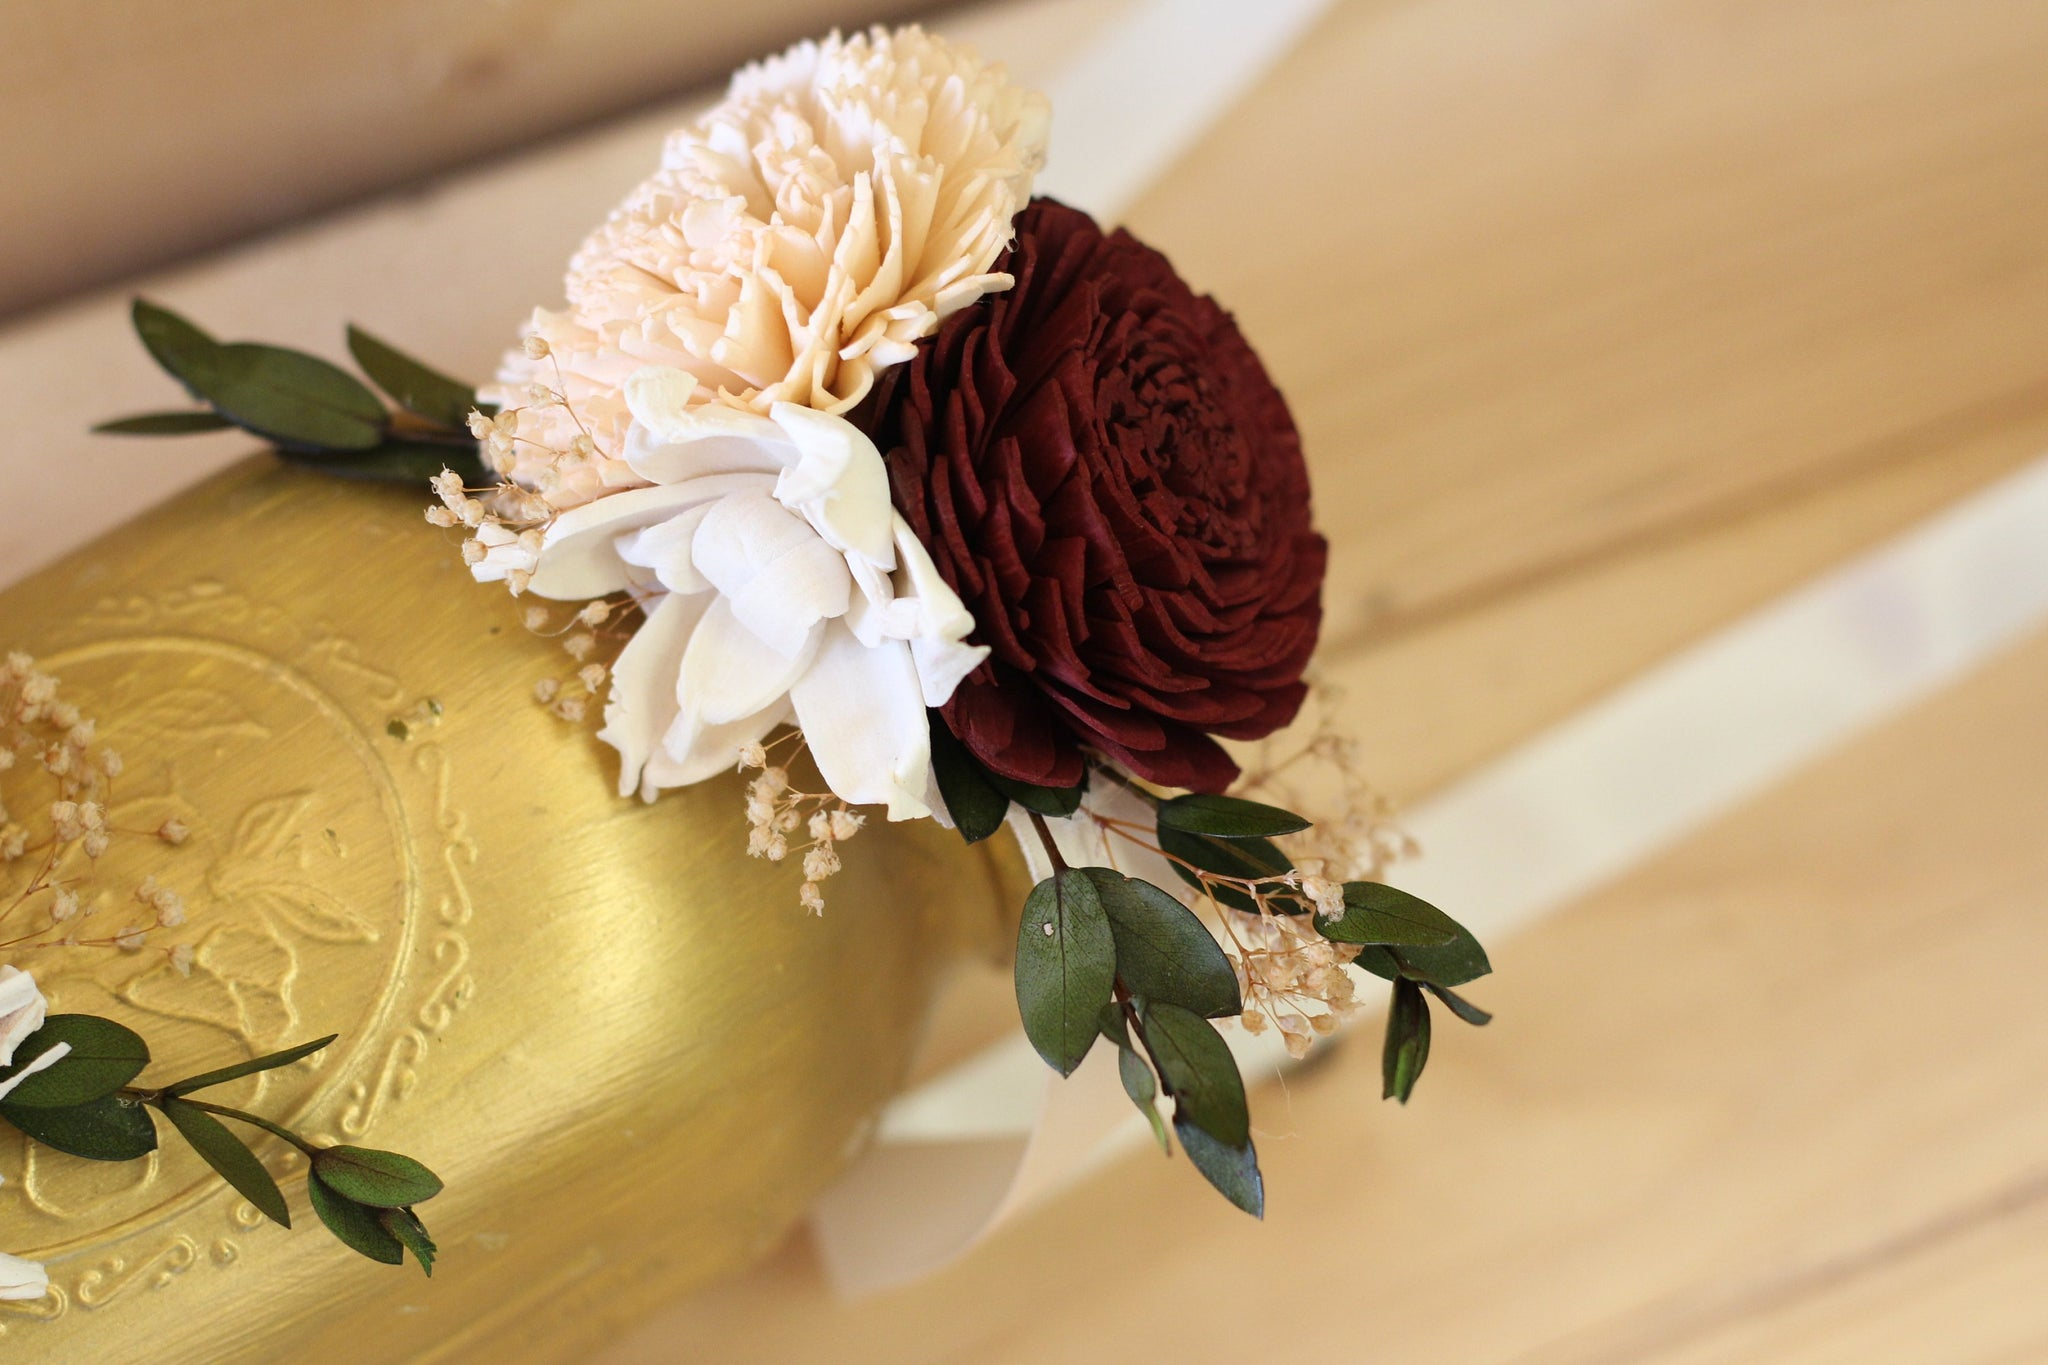 burlap corsage wrist corsage burlap rose mother of the bride Sola flower corsage wedding flowers mother of the groom